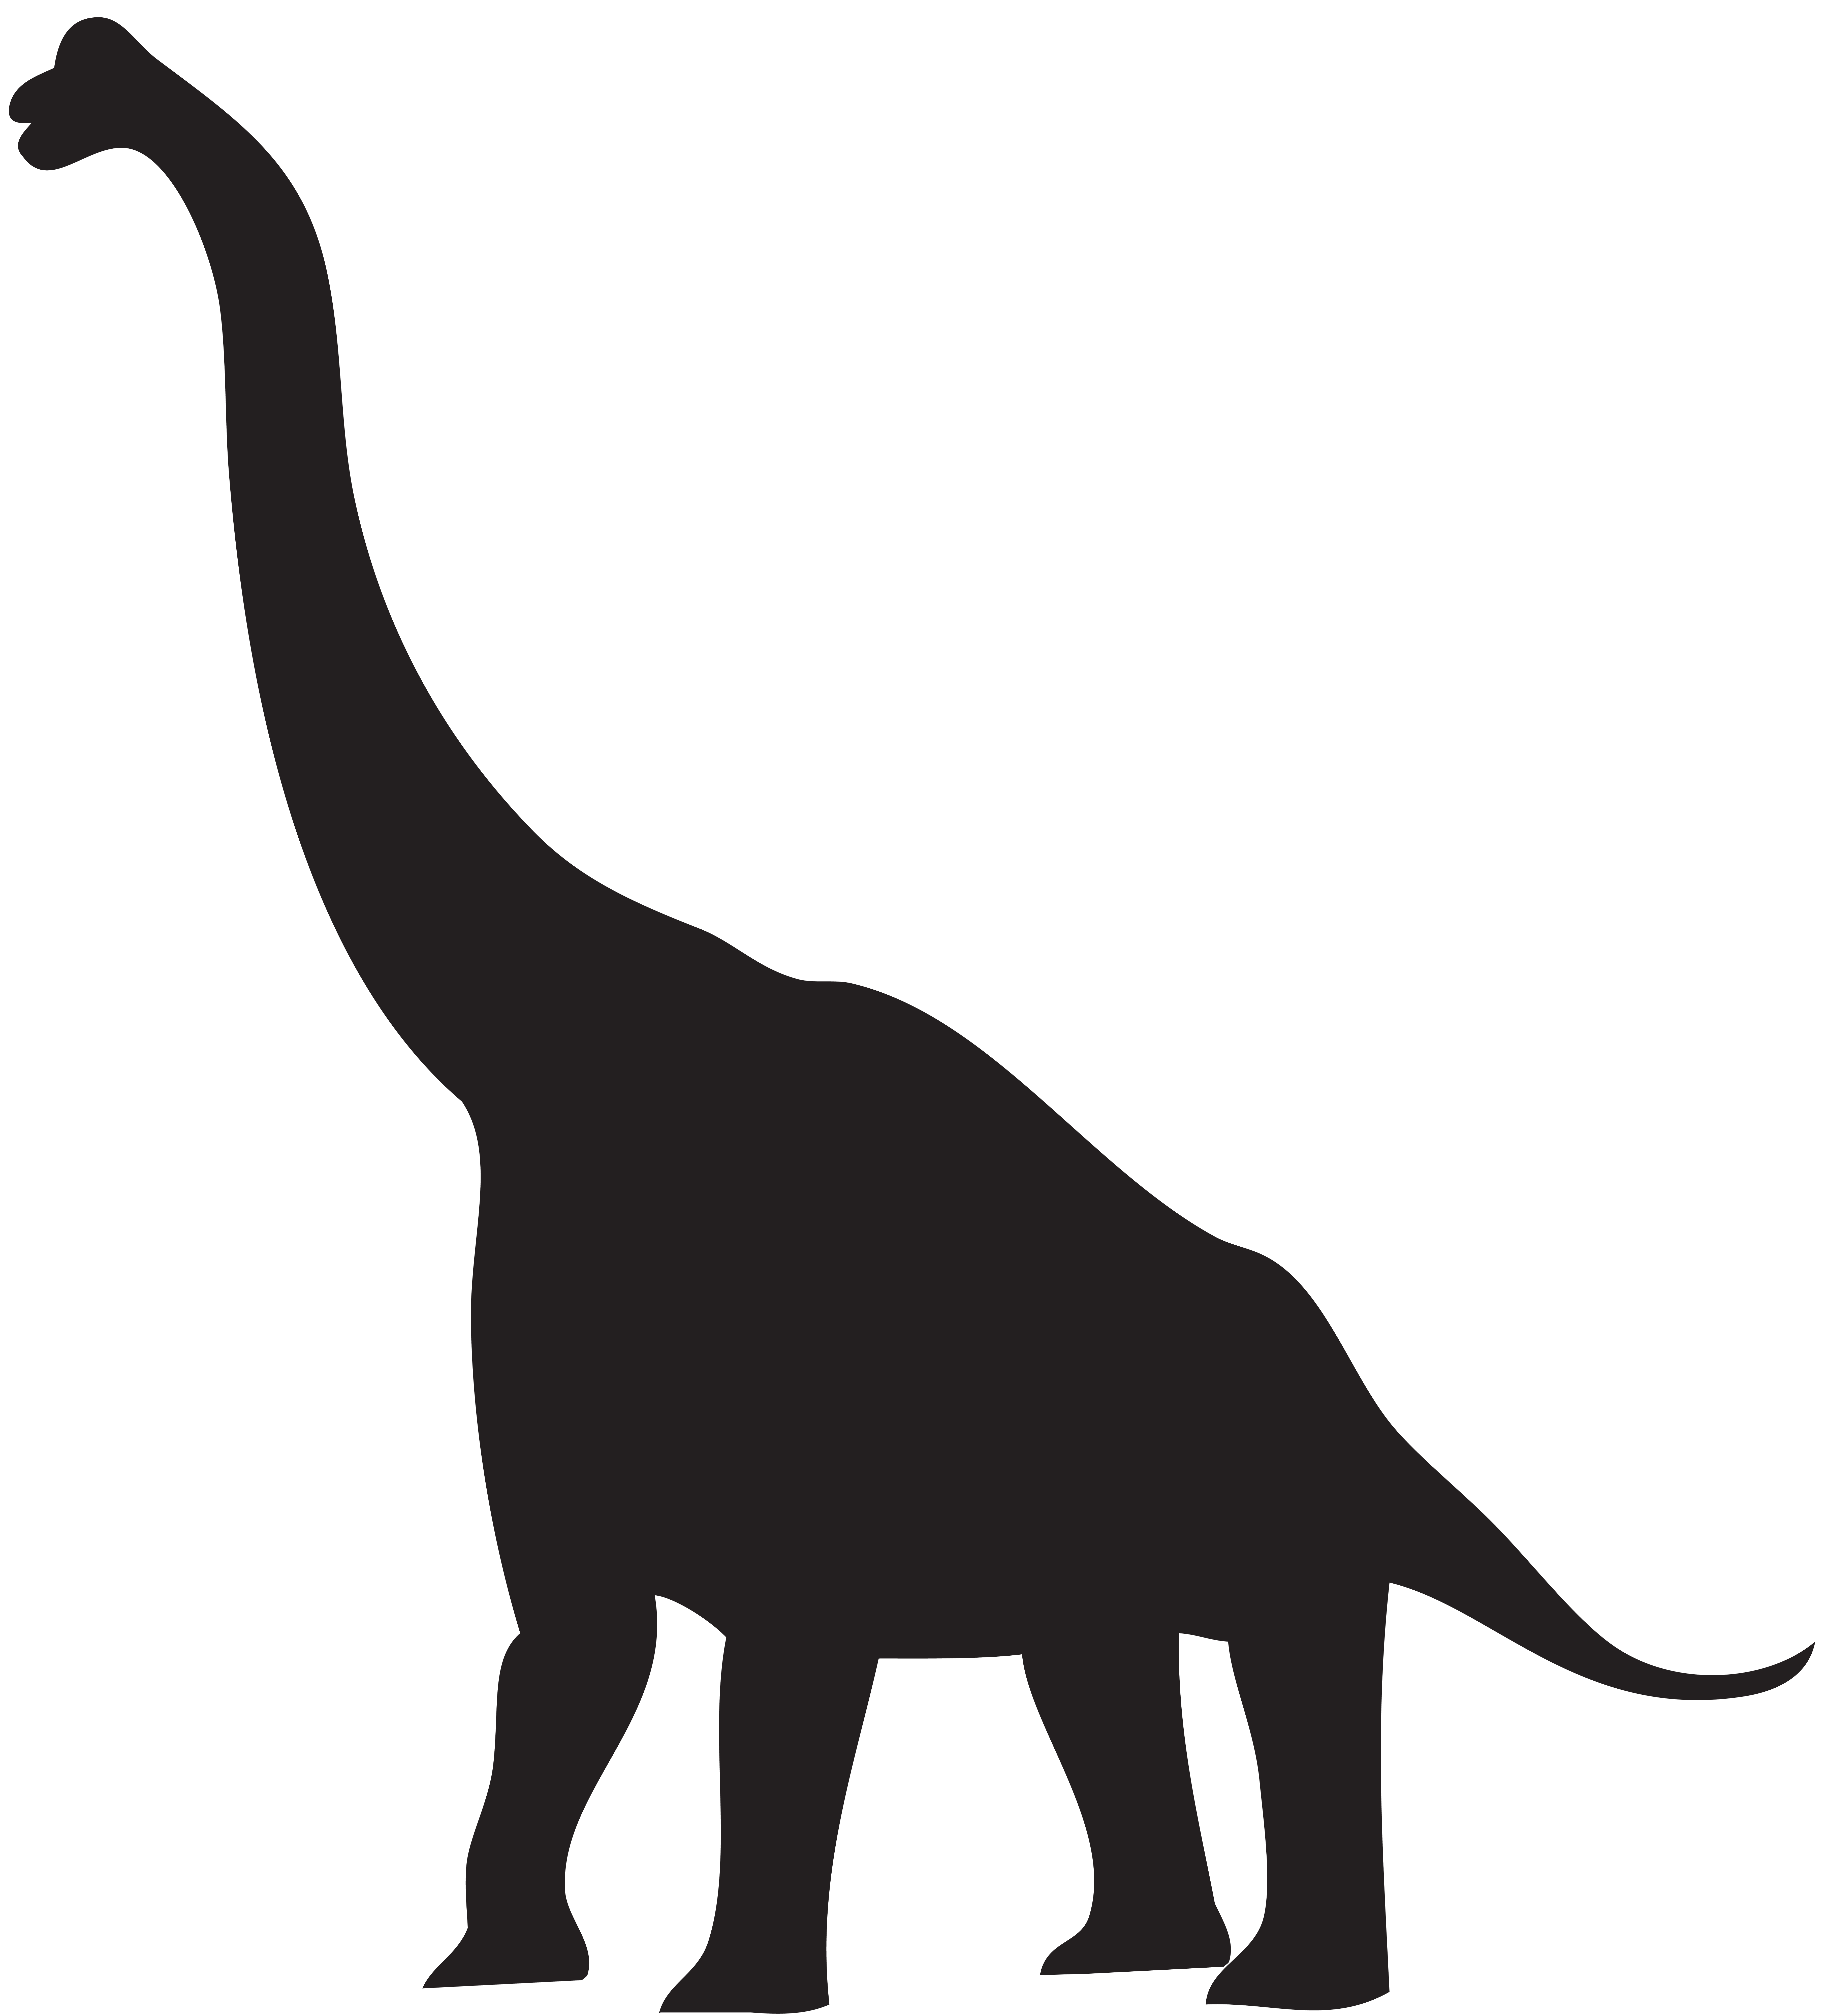 royalty free Dinosaur Silhouette Clipart at GetDrawings